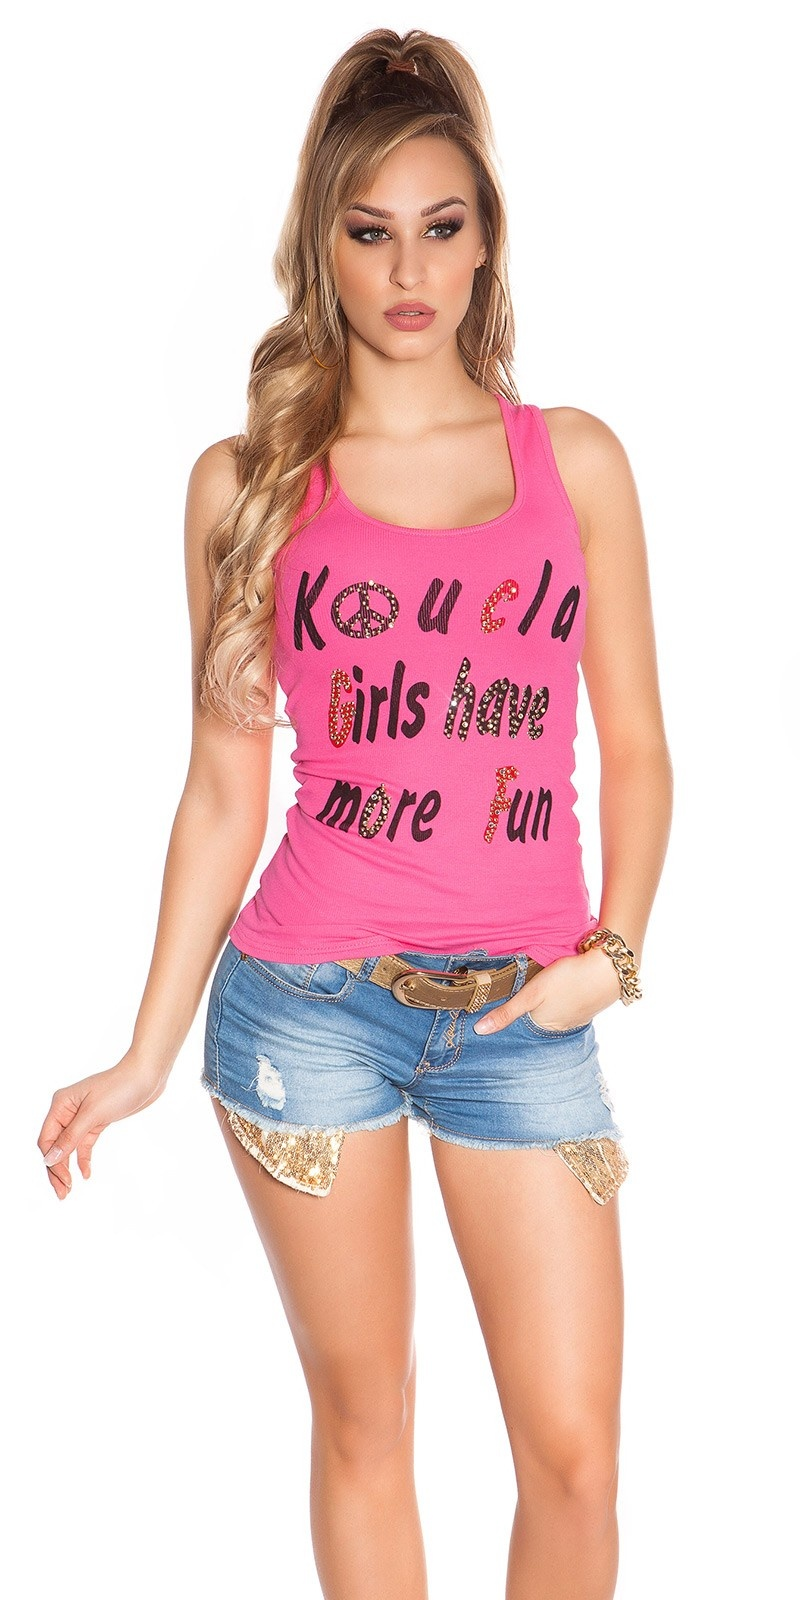 Sexy koucla girls have more fun tanktop met studs fuchsiaroze